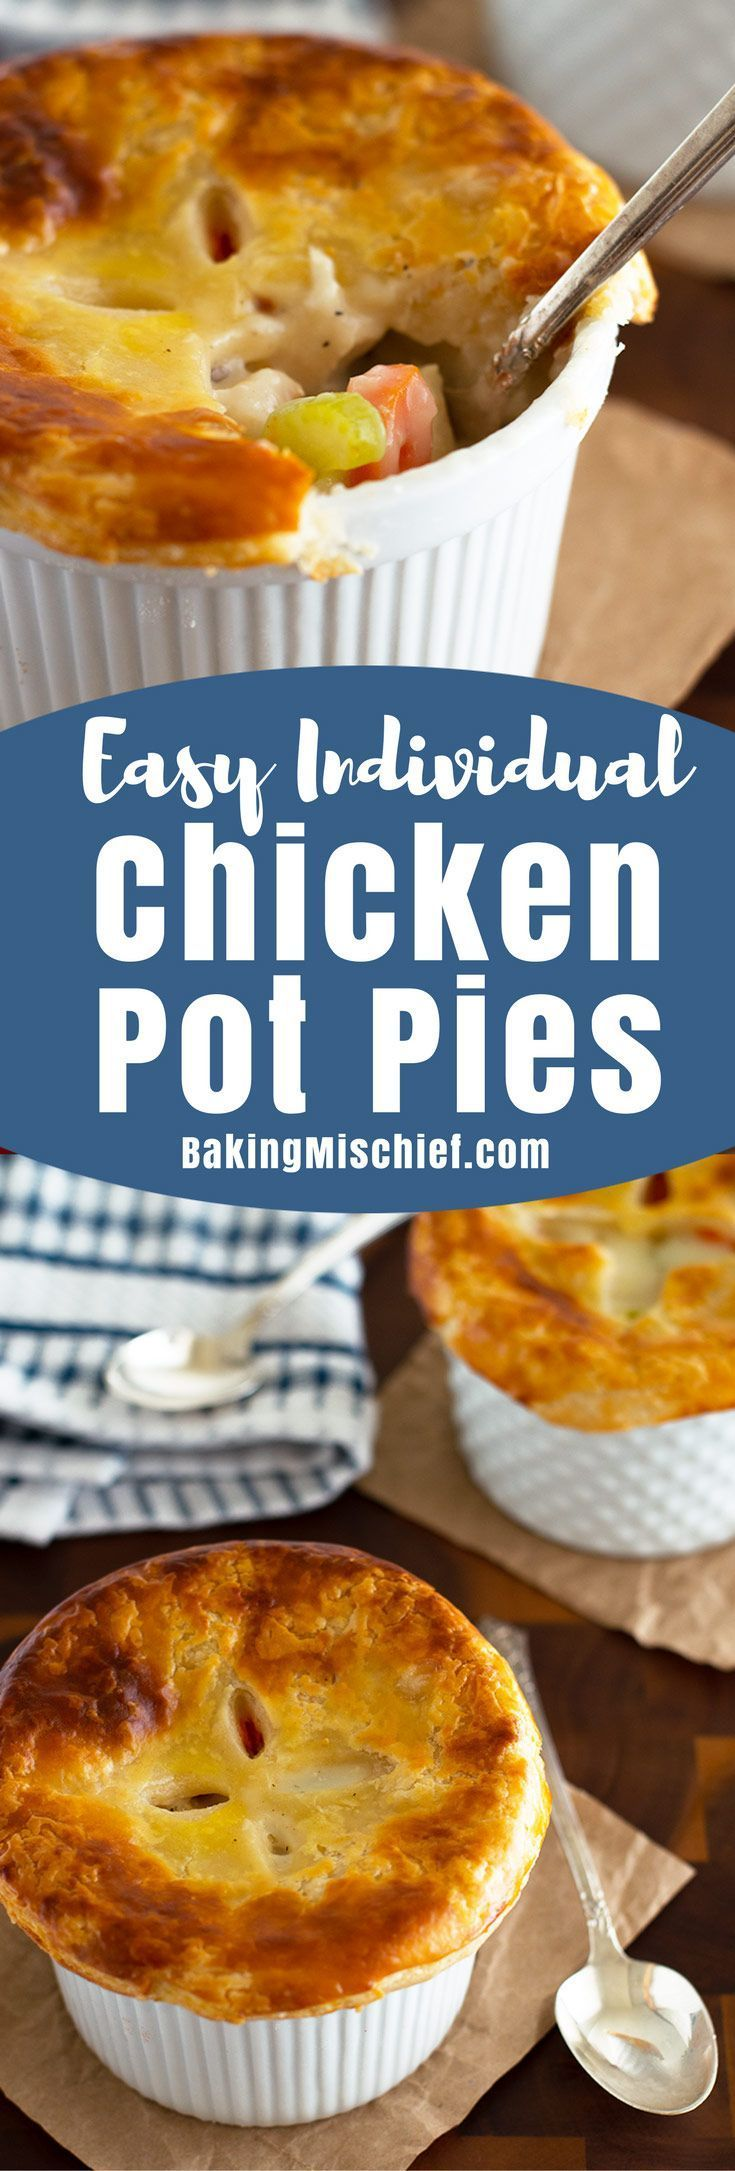 Individual Chicken Pot Pies are a perfect easy dinner for two, stuffed with chicken, carrots, and celery, and topped with a delicious flaky buttermilk crust. From http://BakingMischief.com